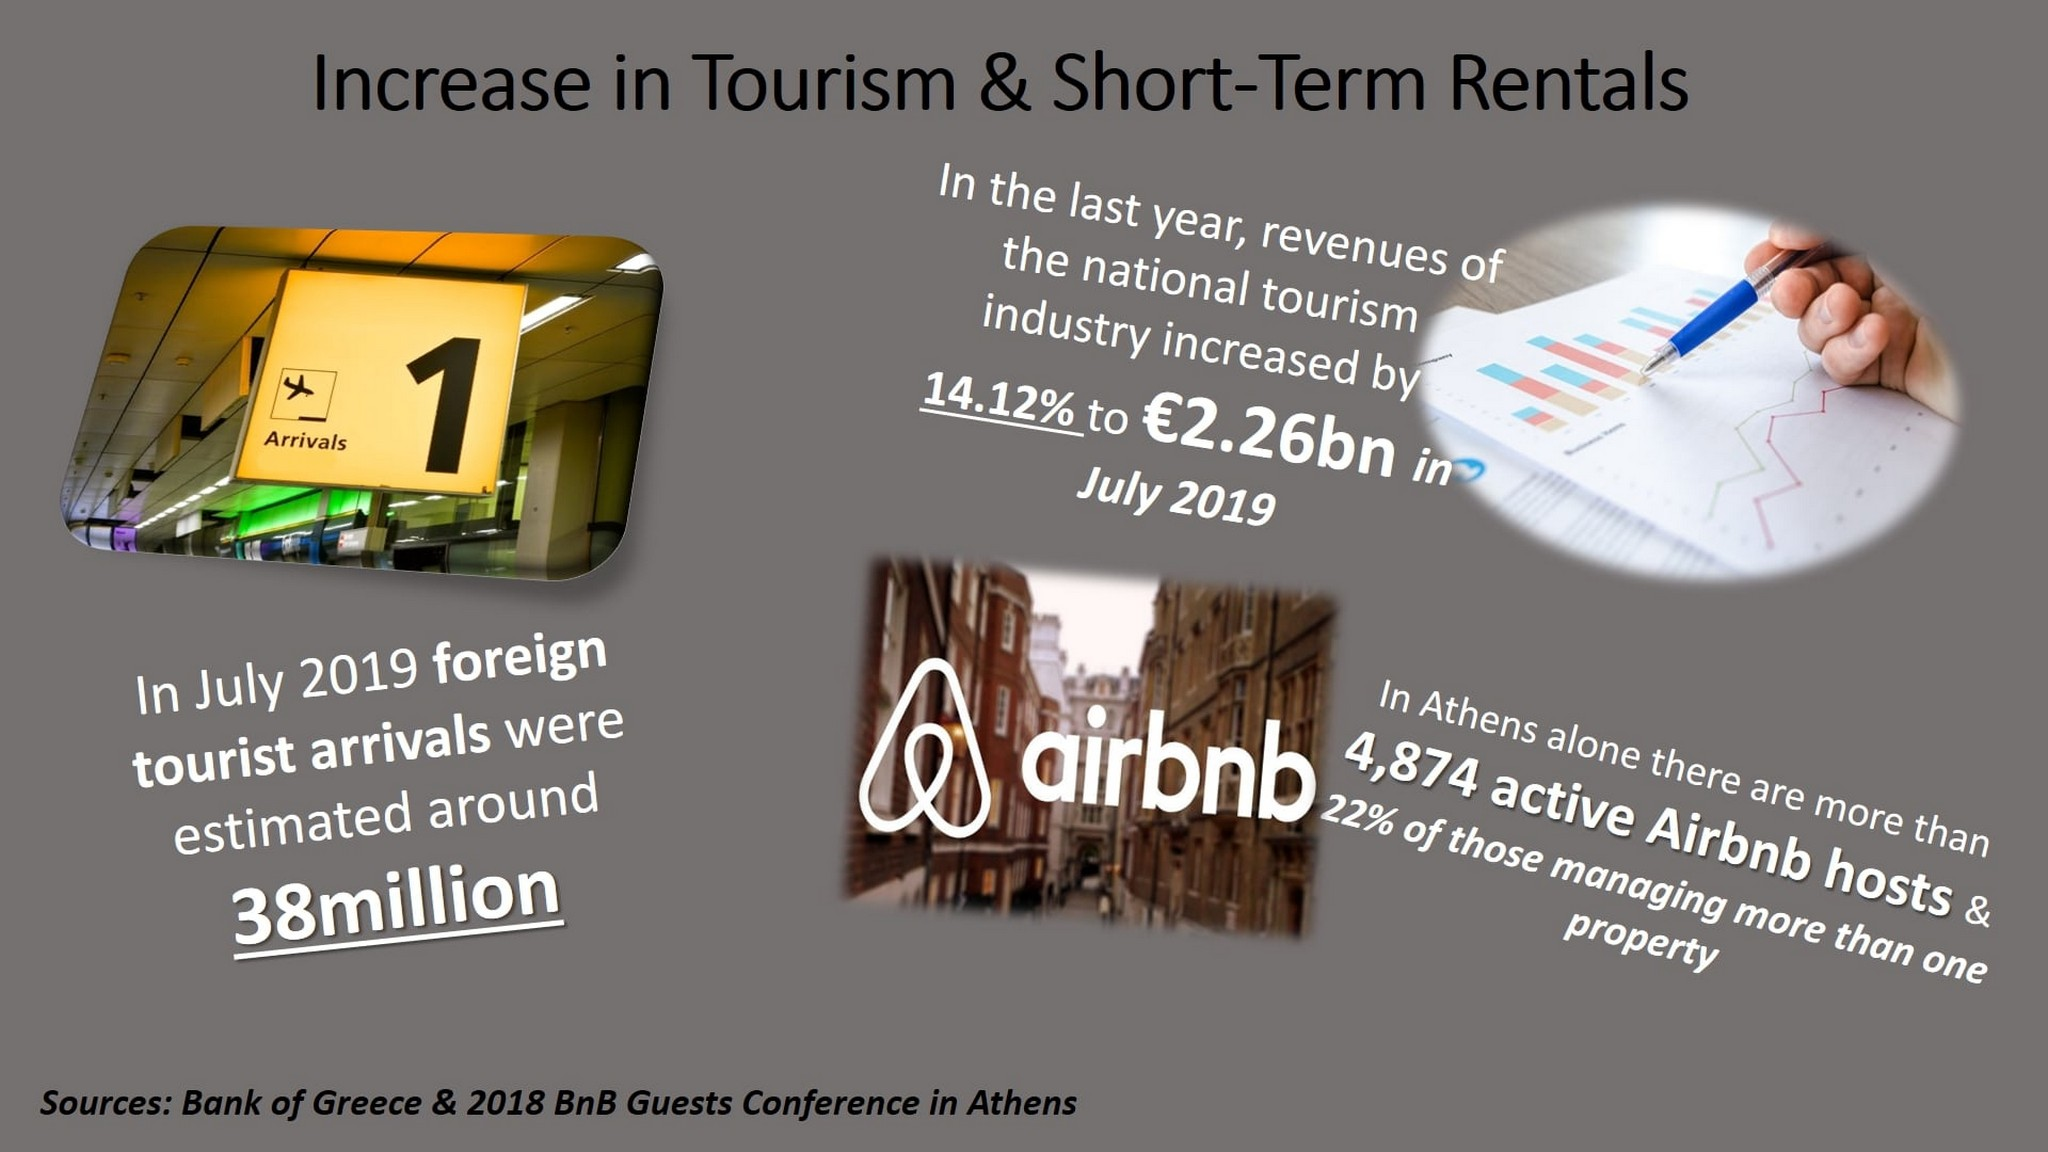 Tourism and Airbnb infographic by Divine Property